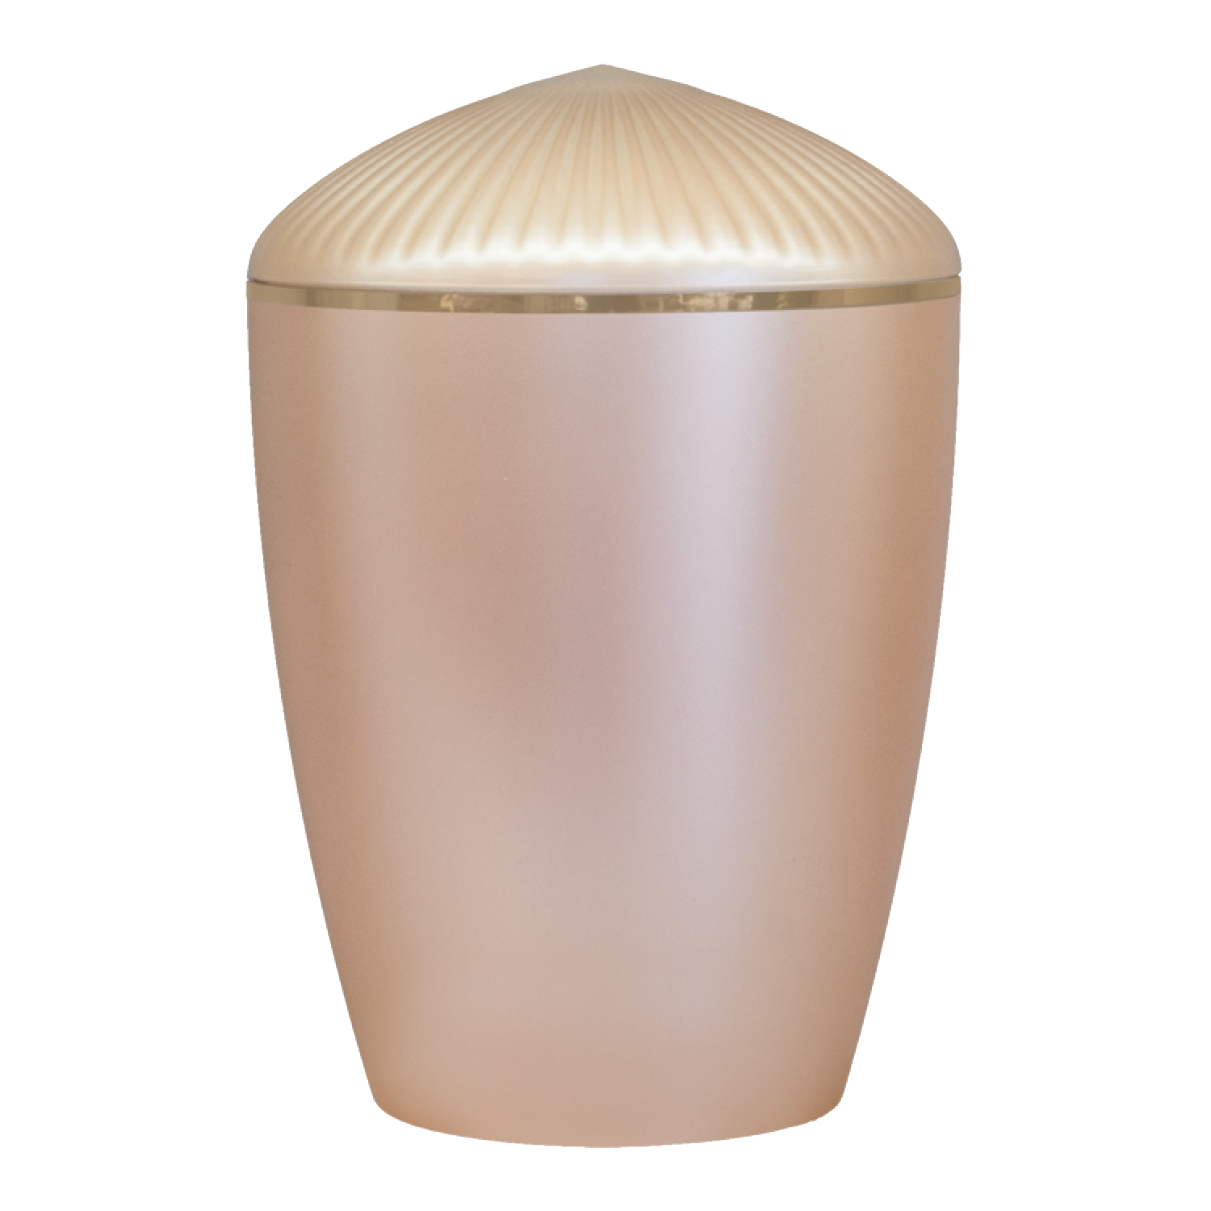 Ferndown Gold Band Cremation Urn – Beige